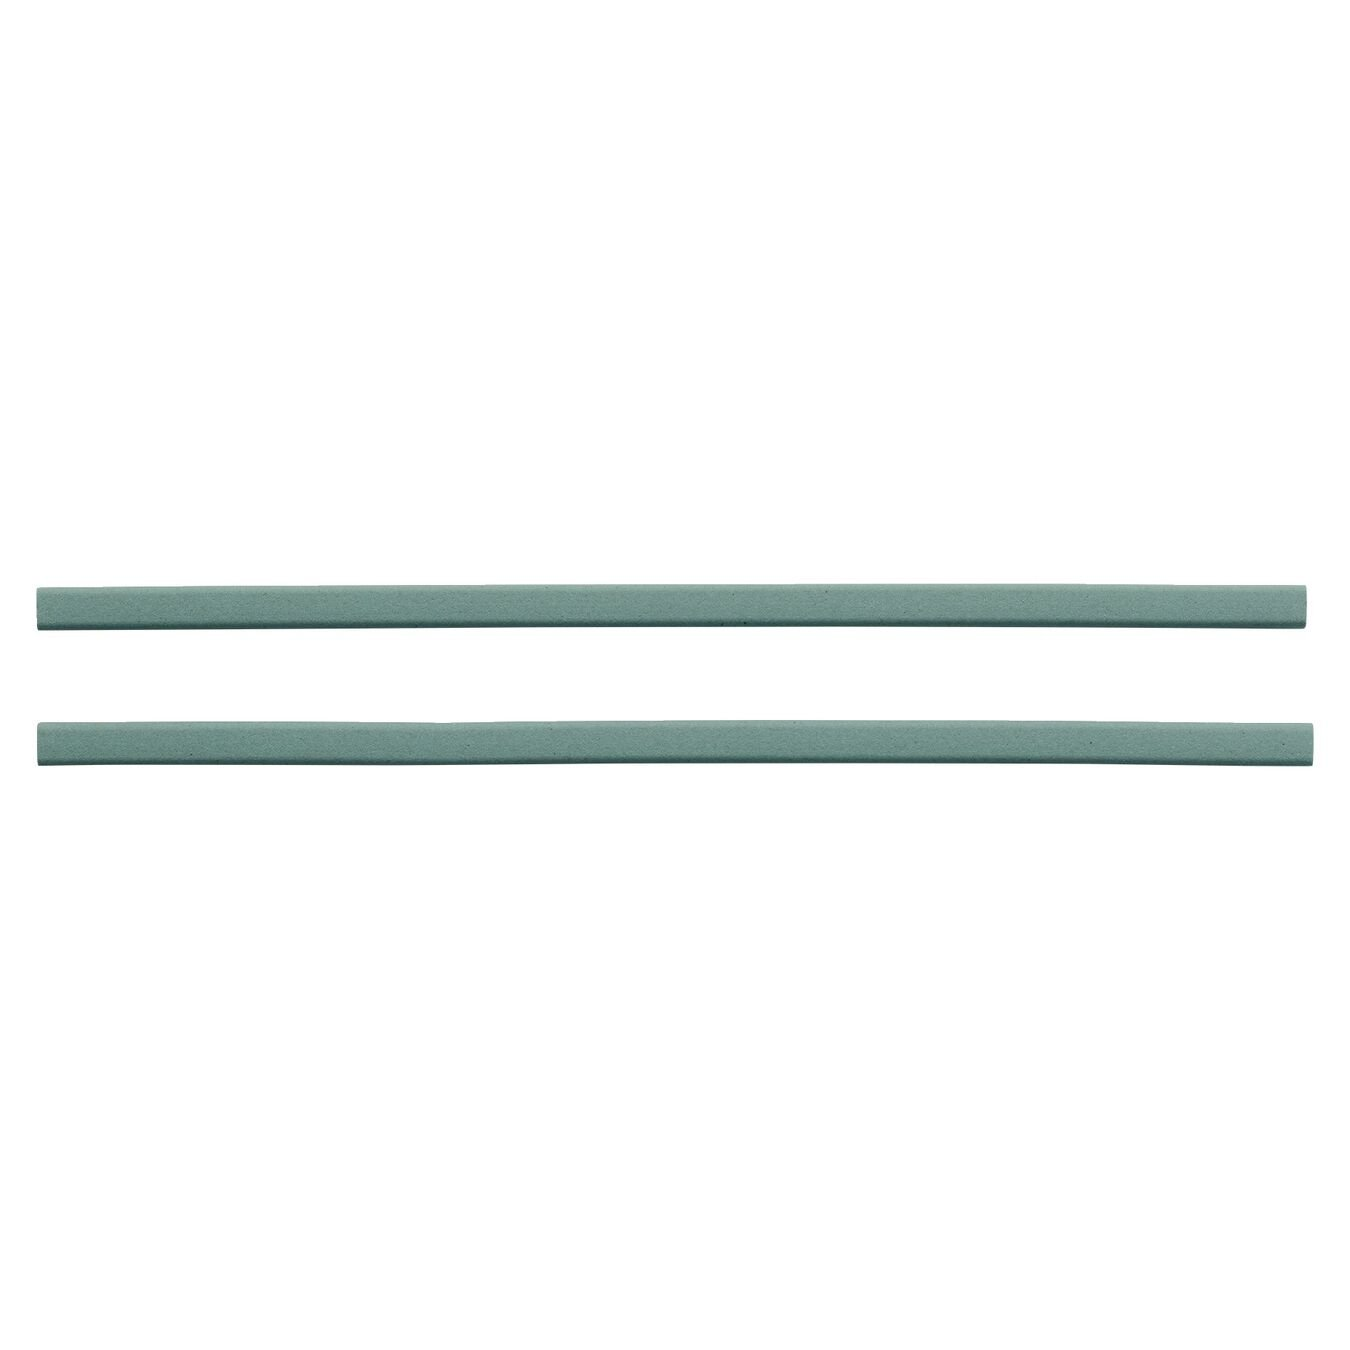 V-Edge 2 Rods Green Medium F360 Grain,,large 1